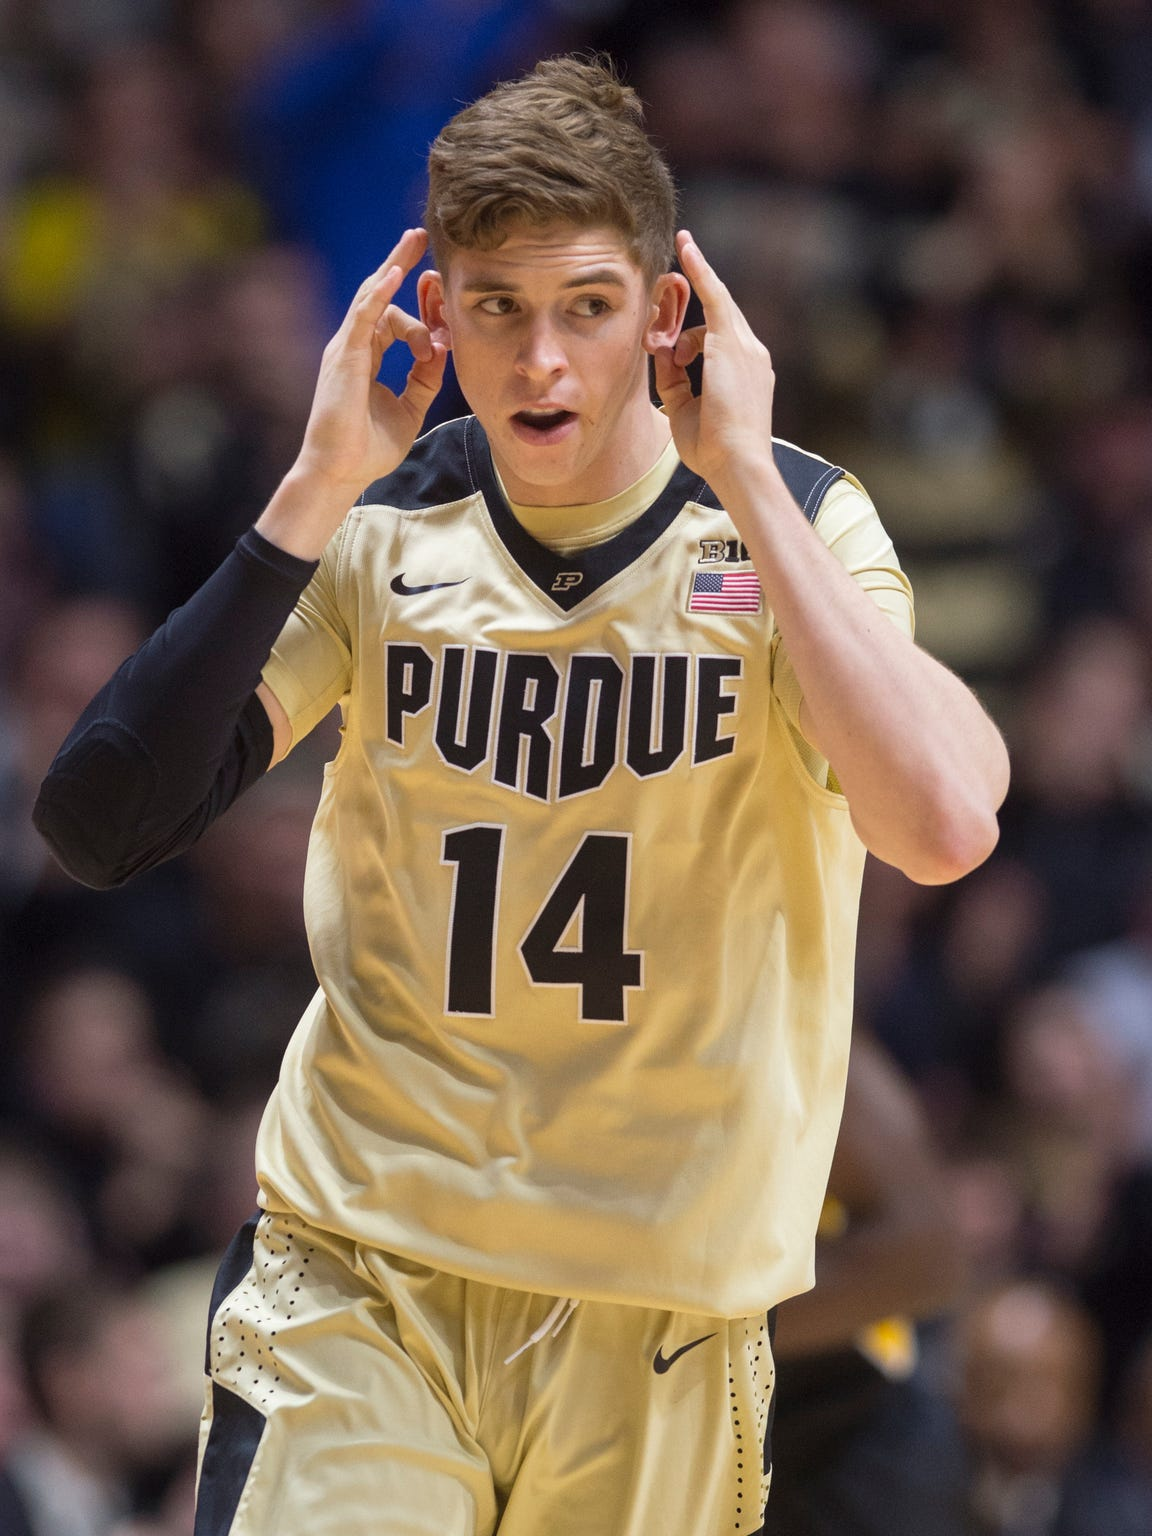 Purdue guard Ryan Cline reacts after hitting a 3-point